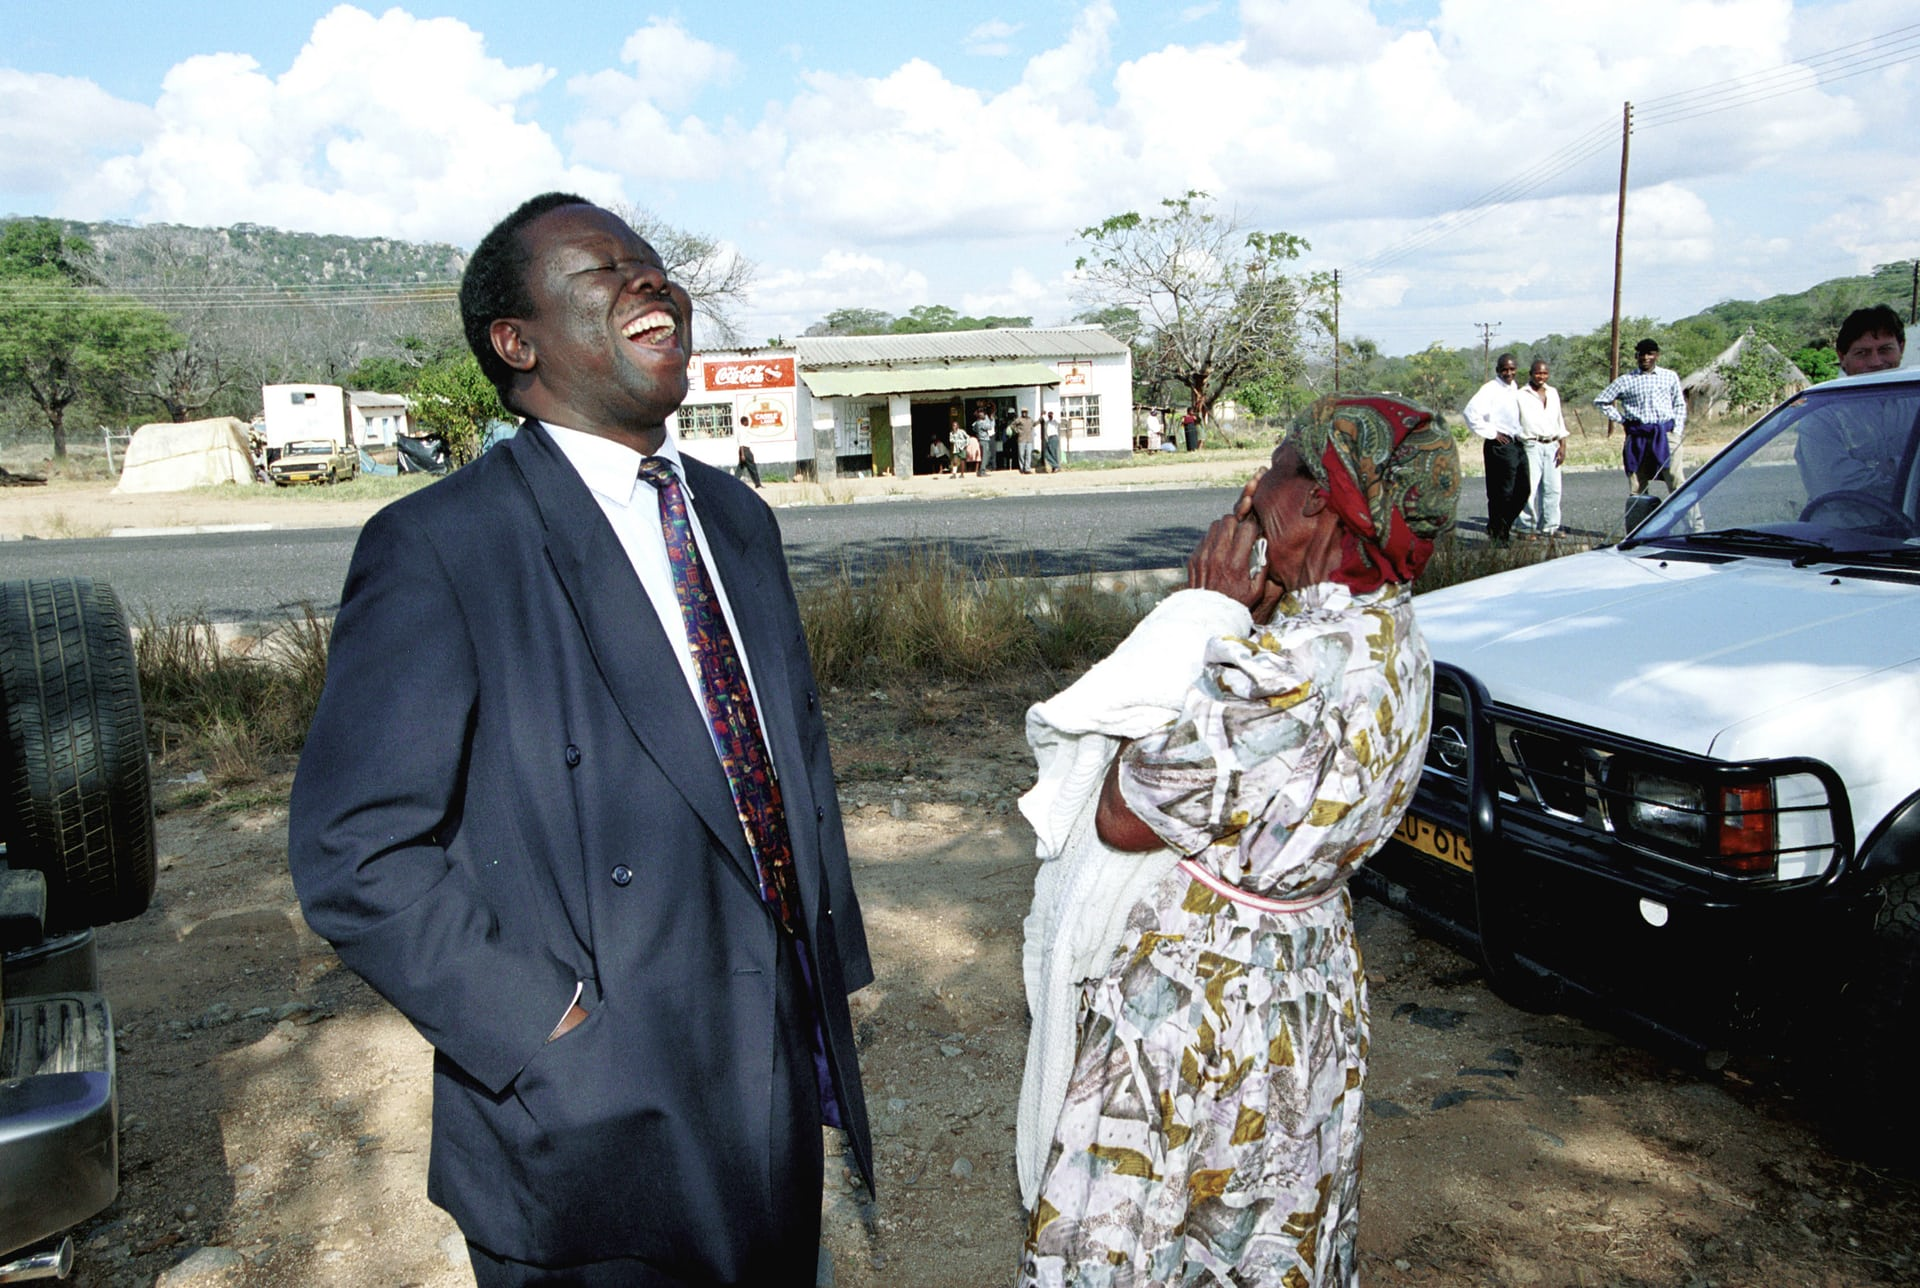 Tsvangirai on his way to vote in parliamentary elections in June 2000. Photograph: Per-Anders Pettersson/Getty Images